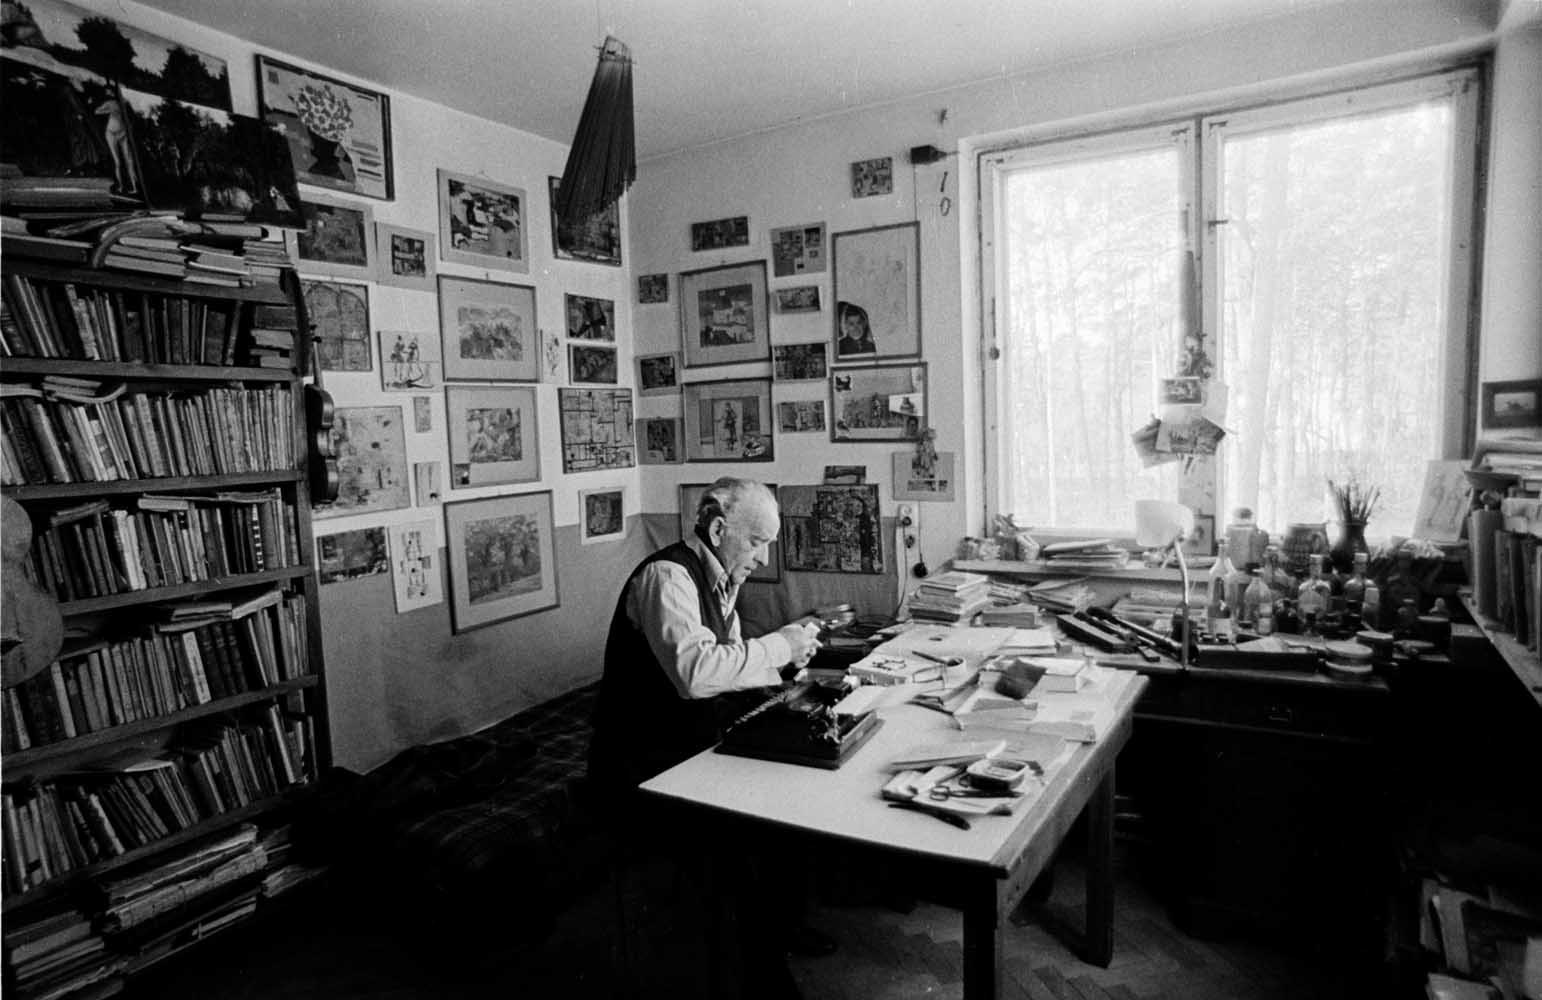 Leopold Buczkowski was also a sculpturer and painter, here at home in Konstancin, near Warsaw, 1972, photo: Aleksander Jałosiński / Forum